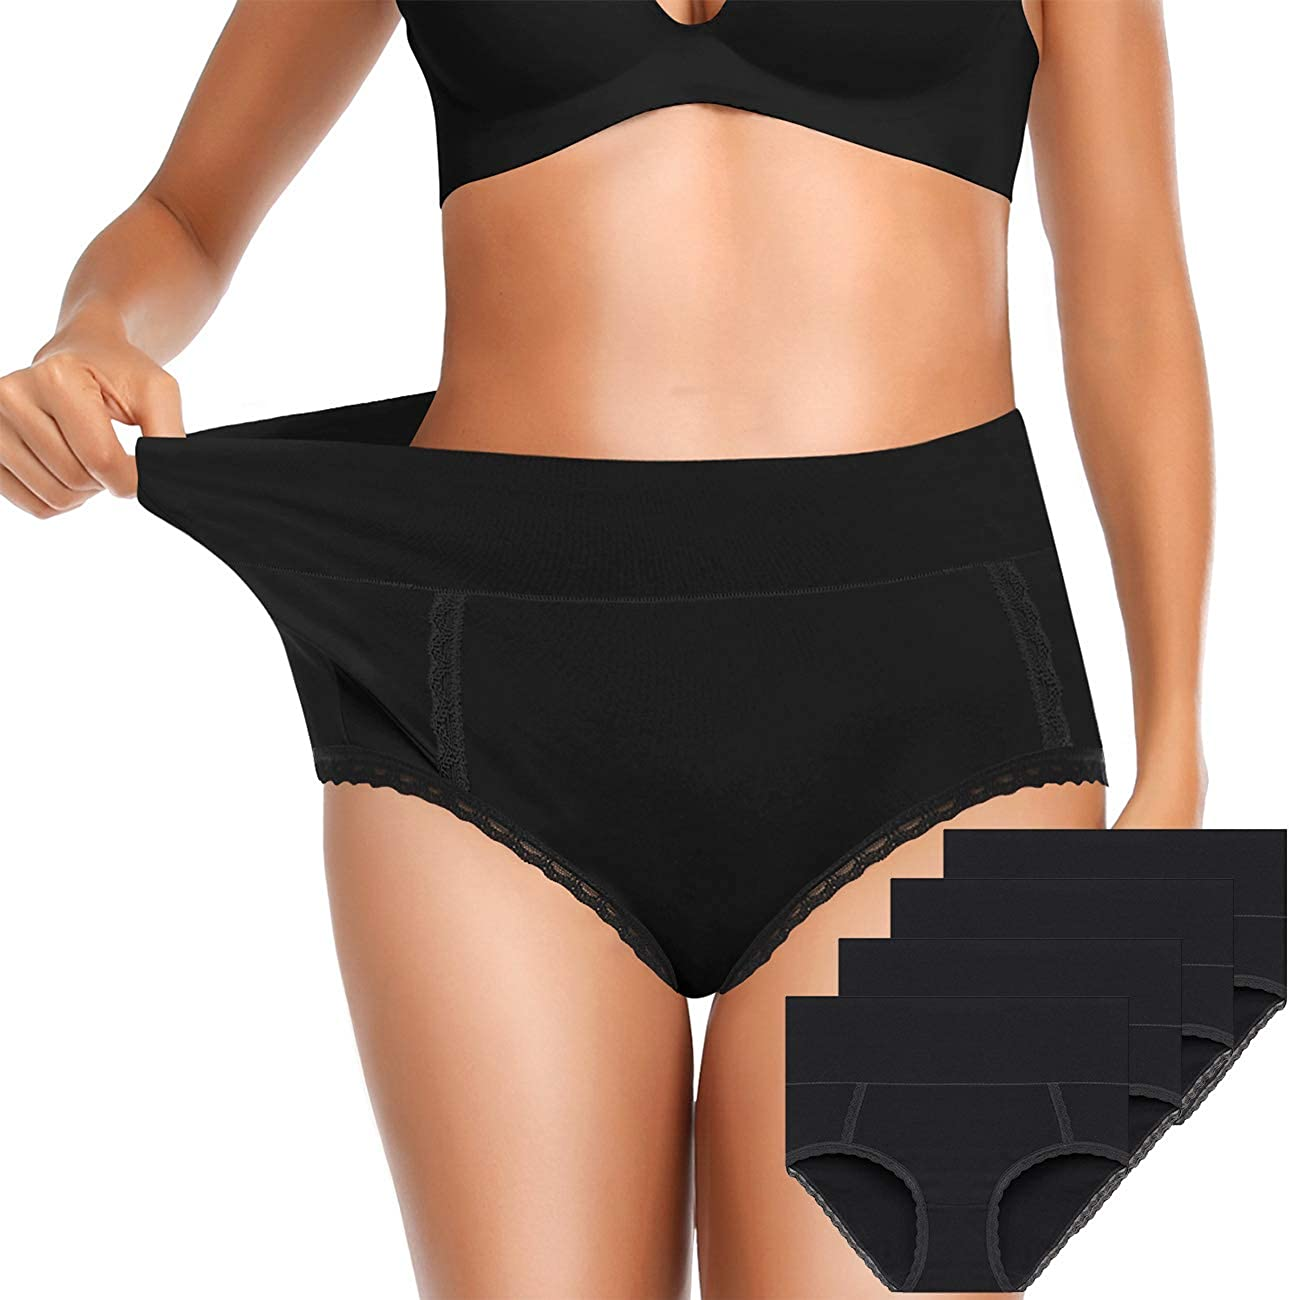 OLIKEME Underwear for Women High Waist Full Coverage Breathable Ladies Briefs Panties